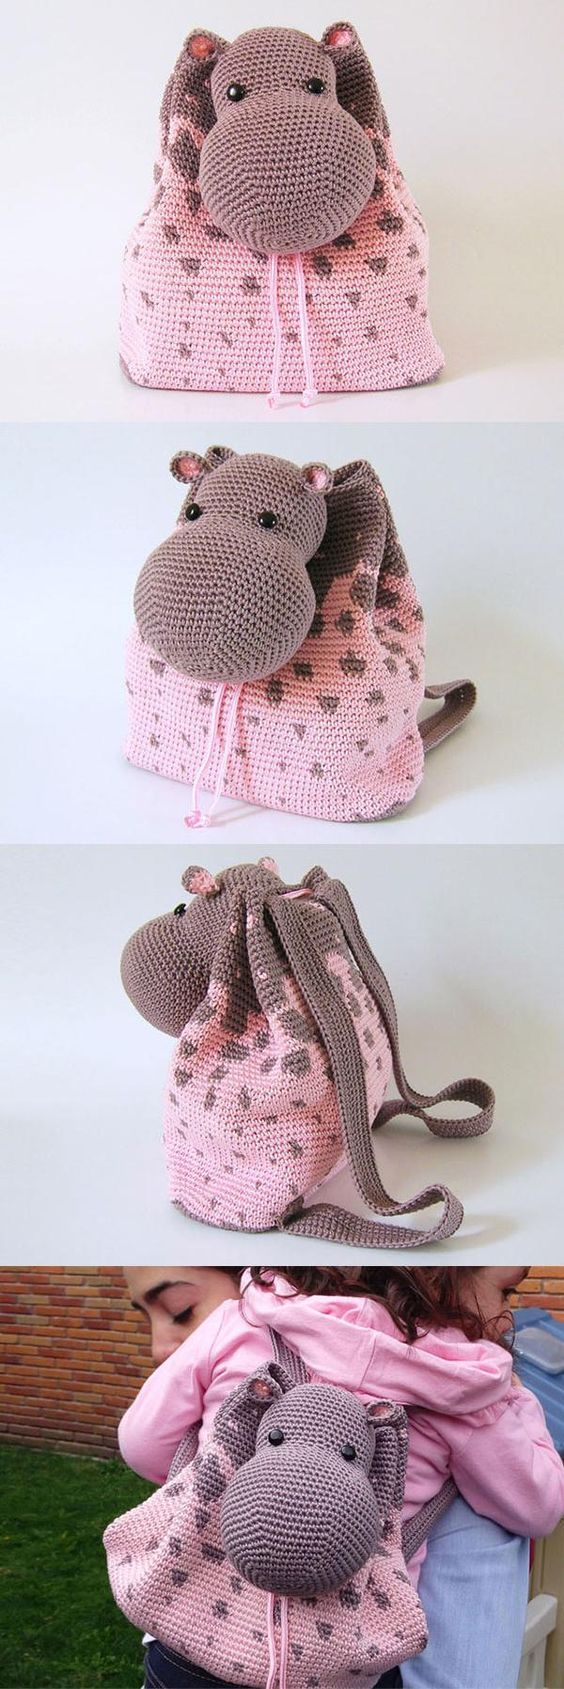 Crochet Backpack Bag Pattern Lots Of Free Tutorials | The WHOot